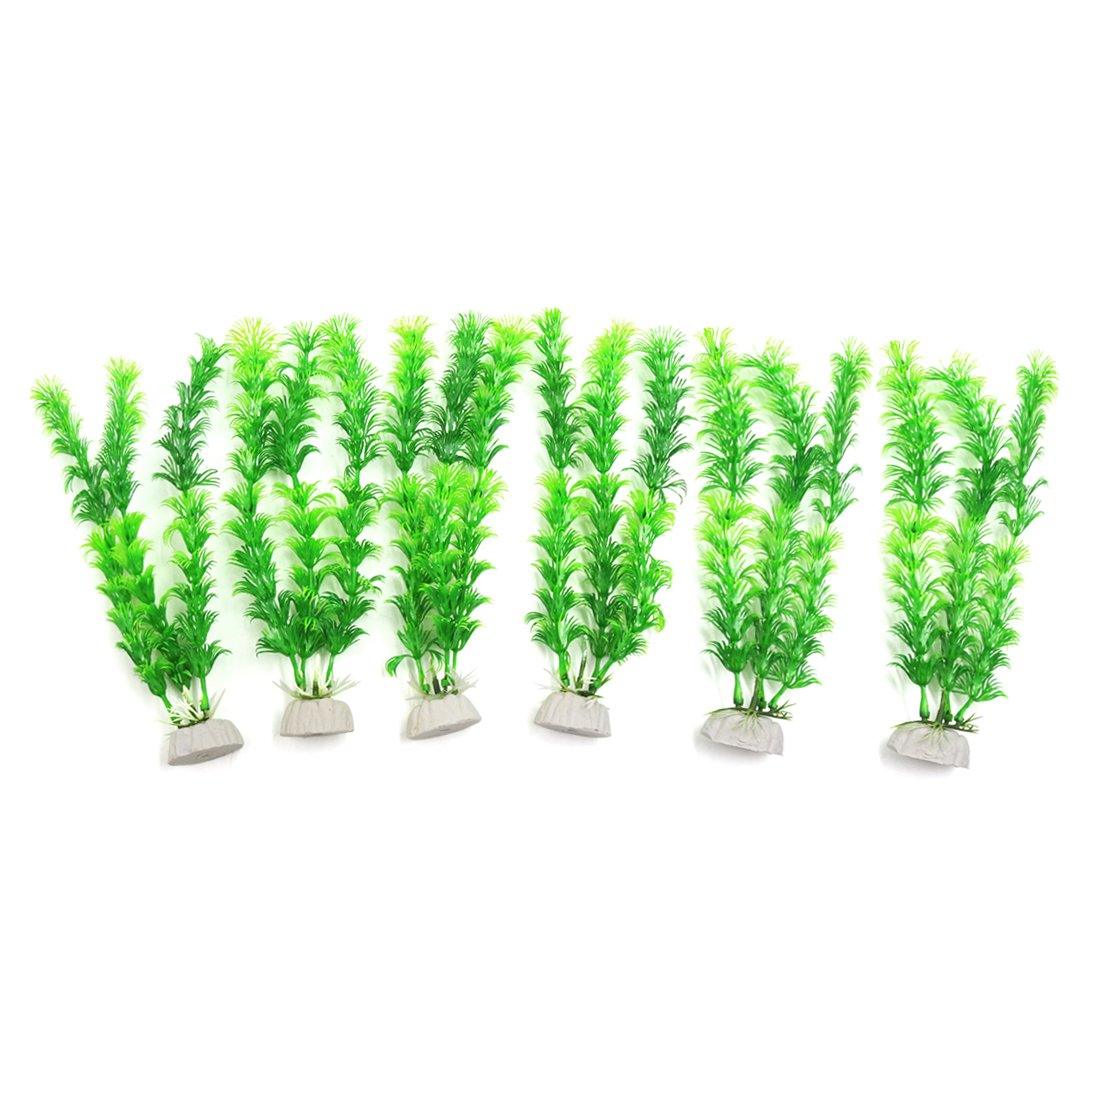 6pcs Green Plastic Aquarium Plants Fish Tank Water Plant Decoration Ornament